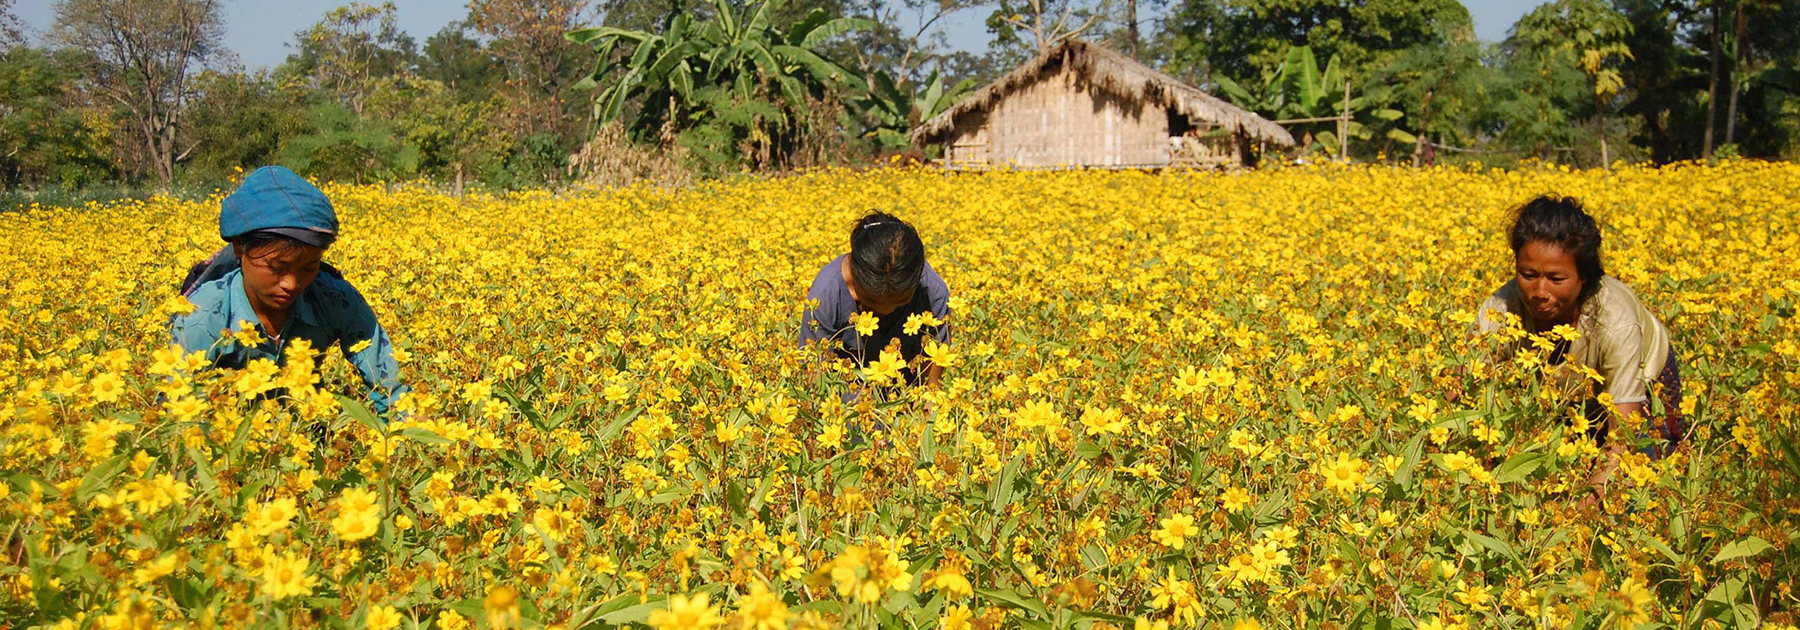 Chakma women work in a sunflower field in Diyun. (PARTHAJIT DATTA/AFP/Getty Images)